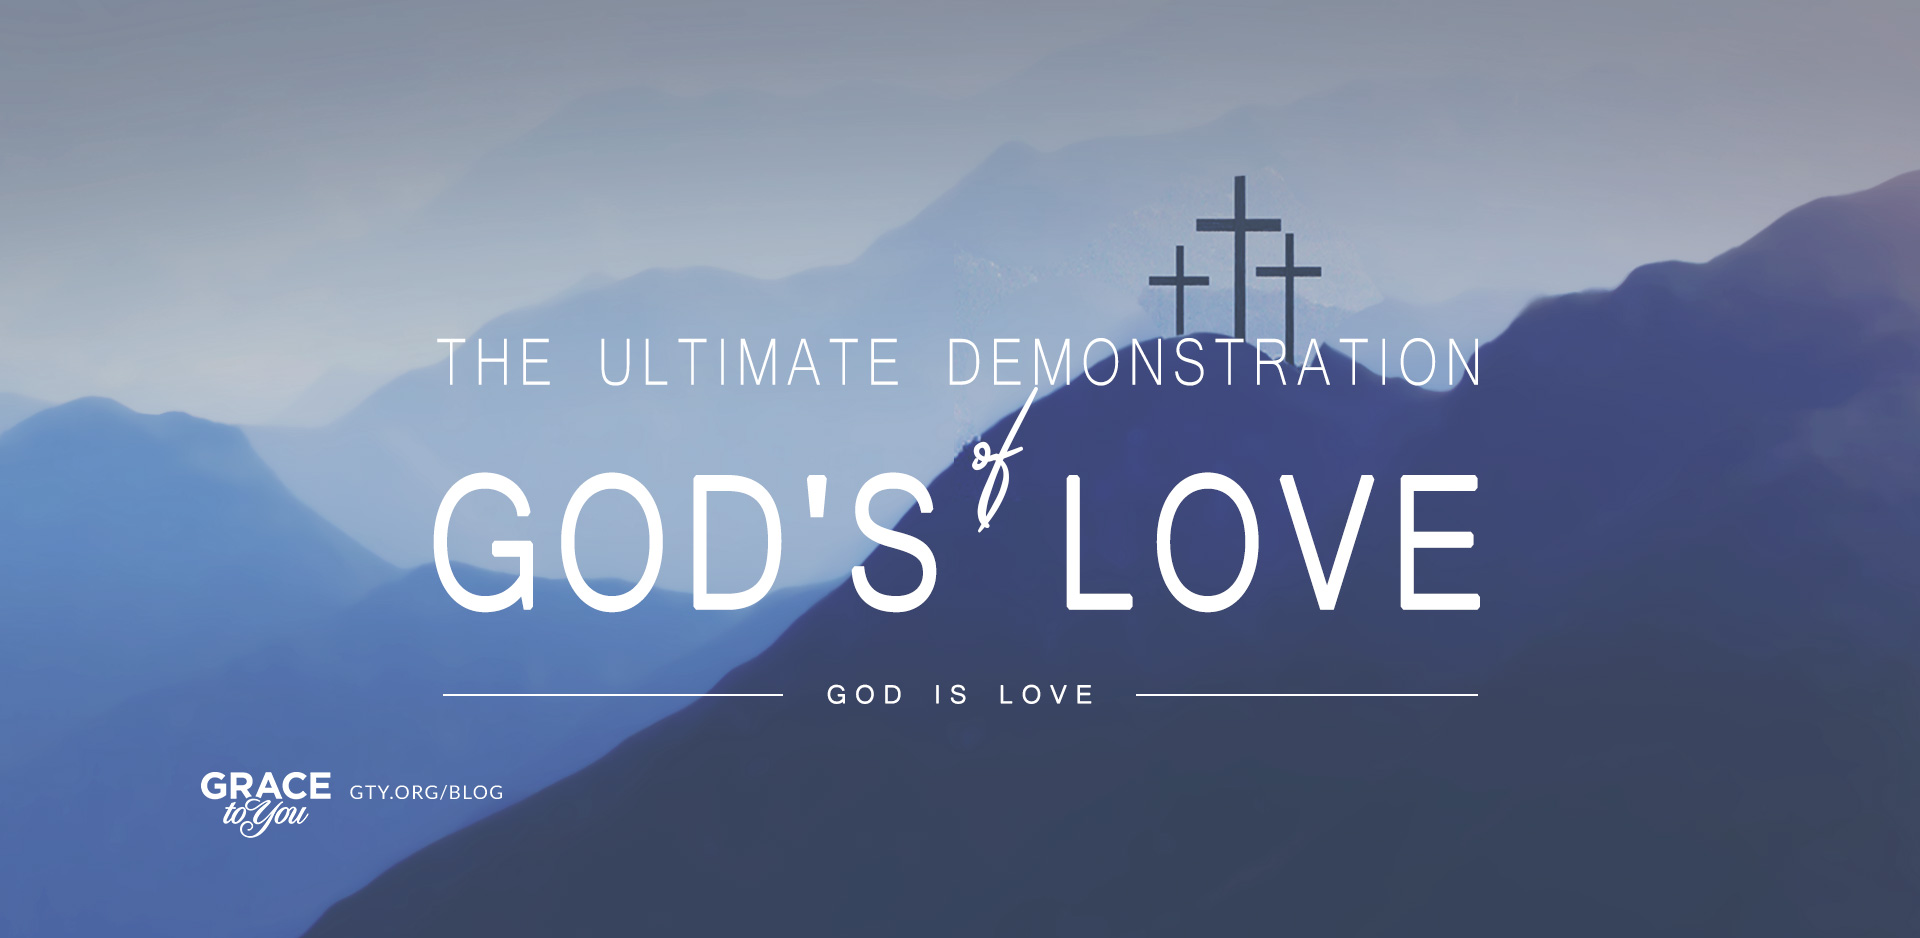 The Ultimate Demonstration of God's Love